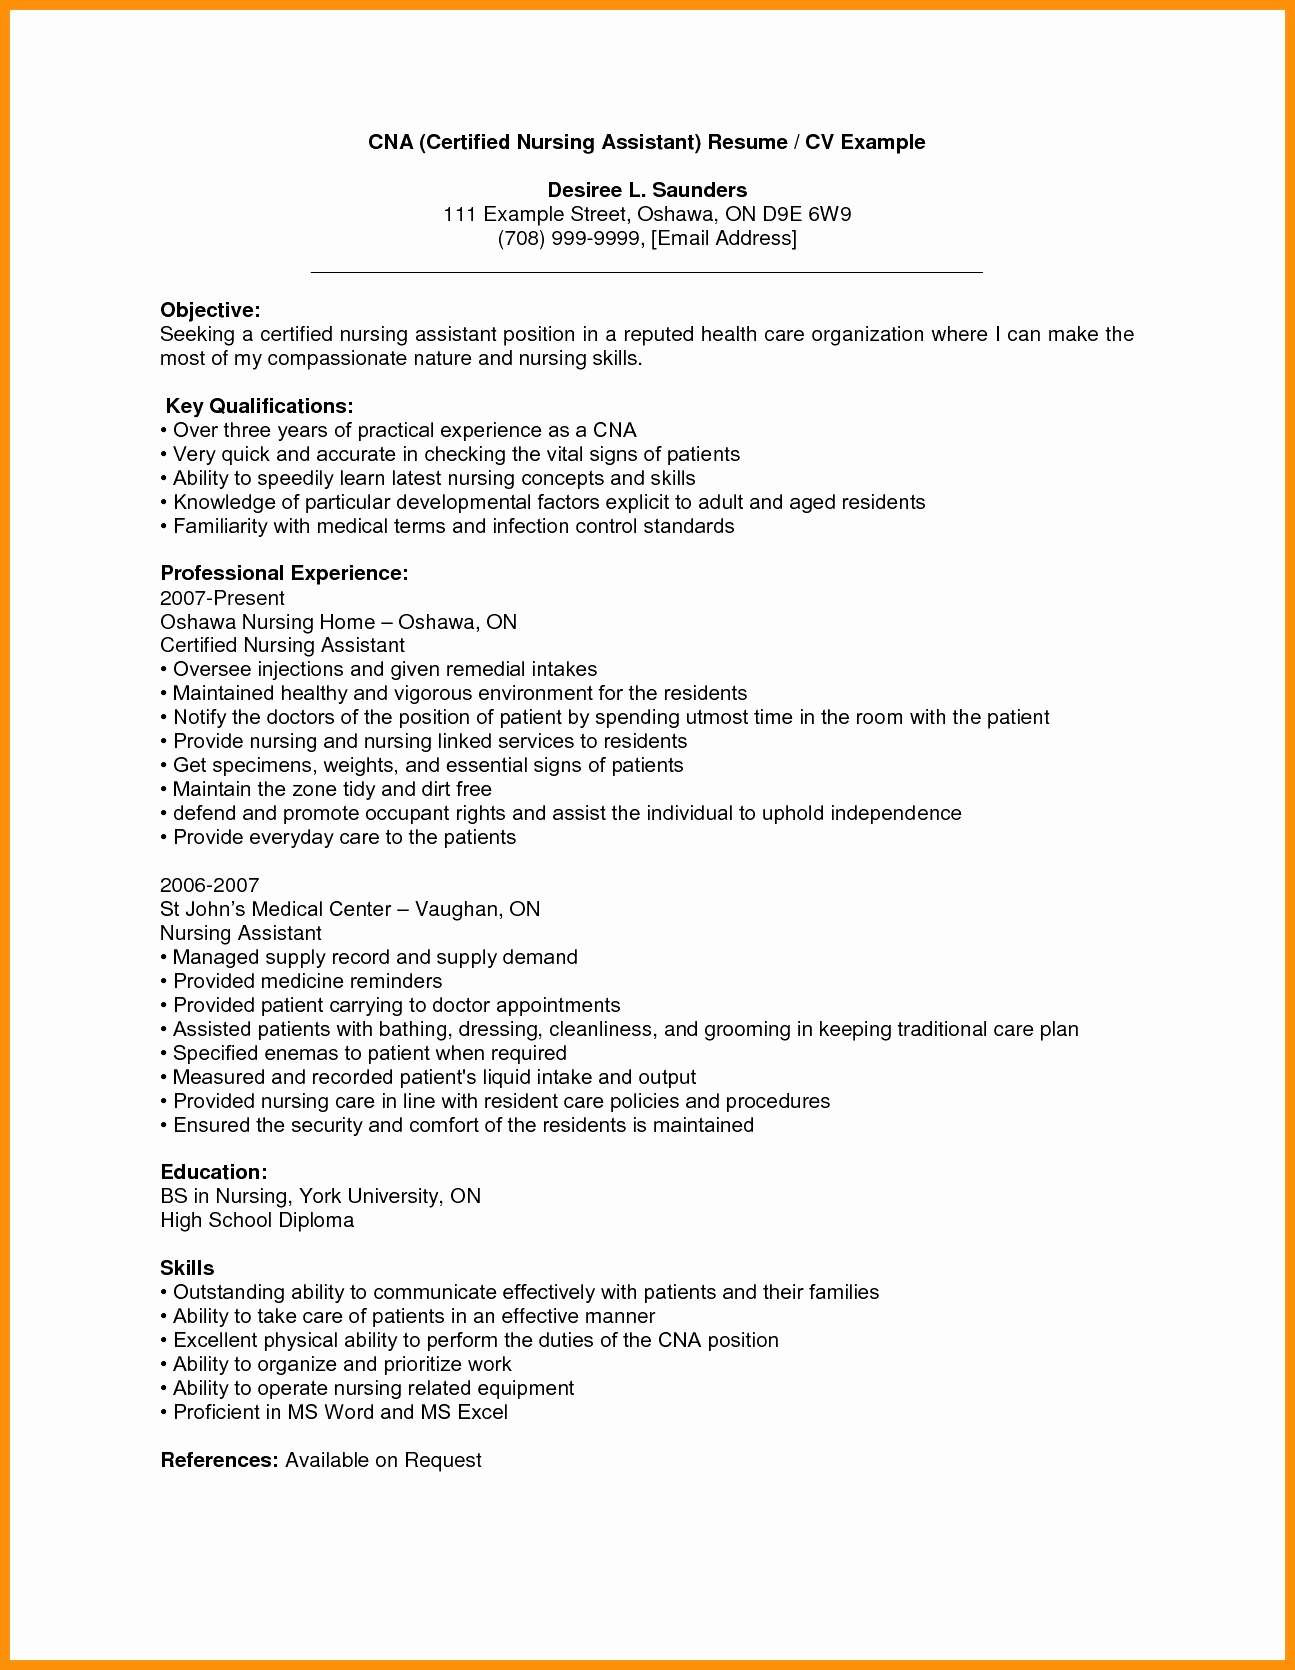 cna resume template microsoft word example-Sample Resume For Cna With Objective Example Resume Additional Skills Examples New Cna Resume Sample Unique 17-l